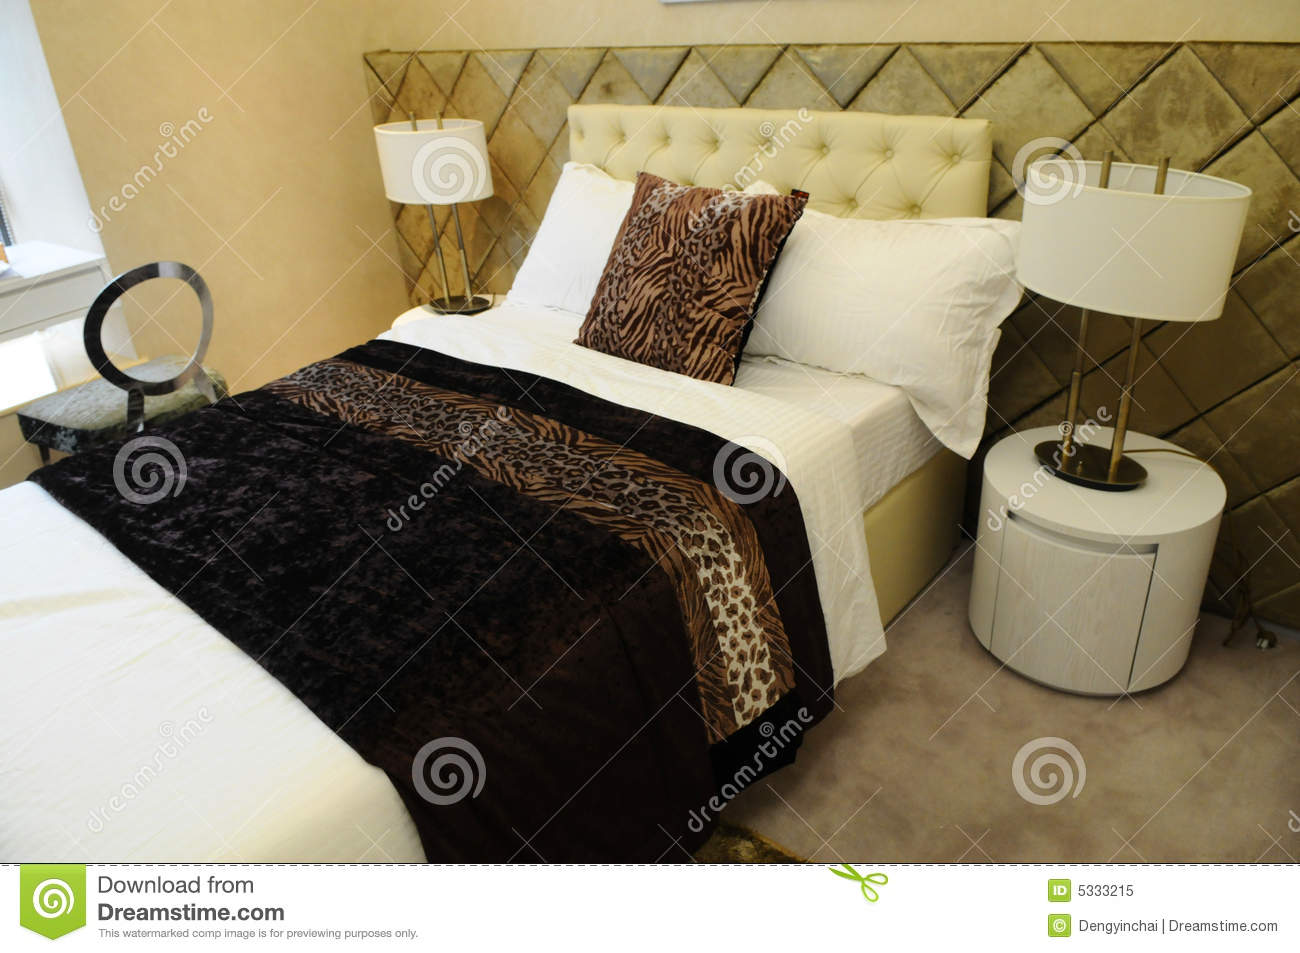 The bedroom fitments stock image. Image of hotel, furniture - 5333215